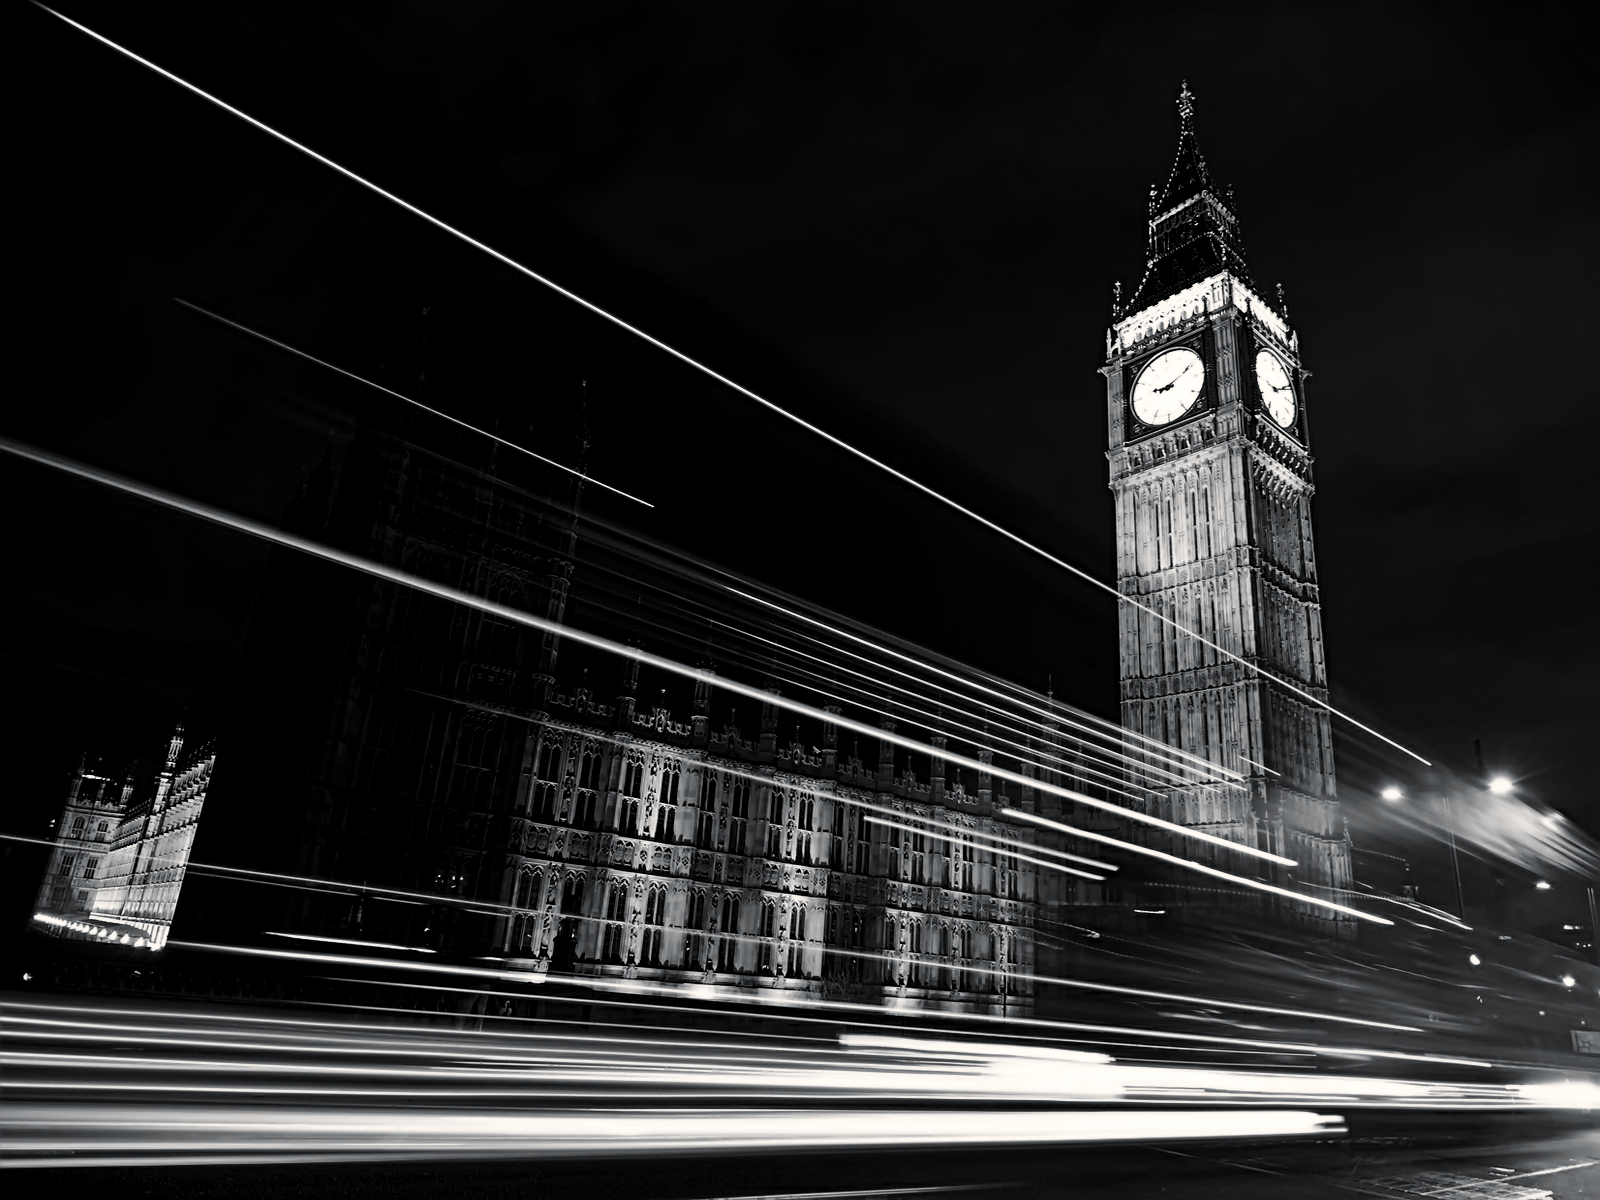 Black and White London Clock Tower wallpaper – Romney Gives